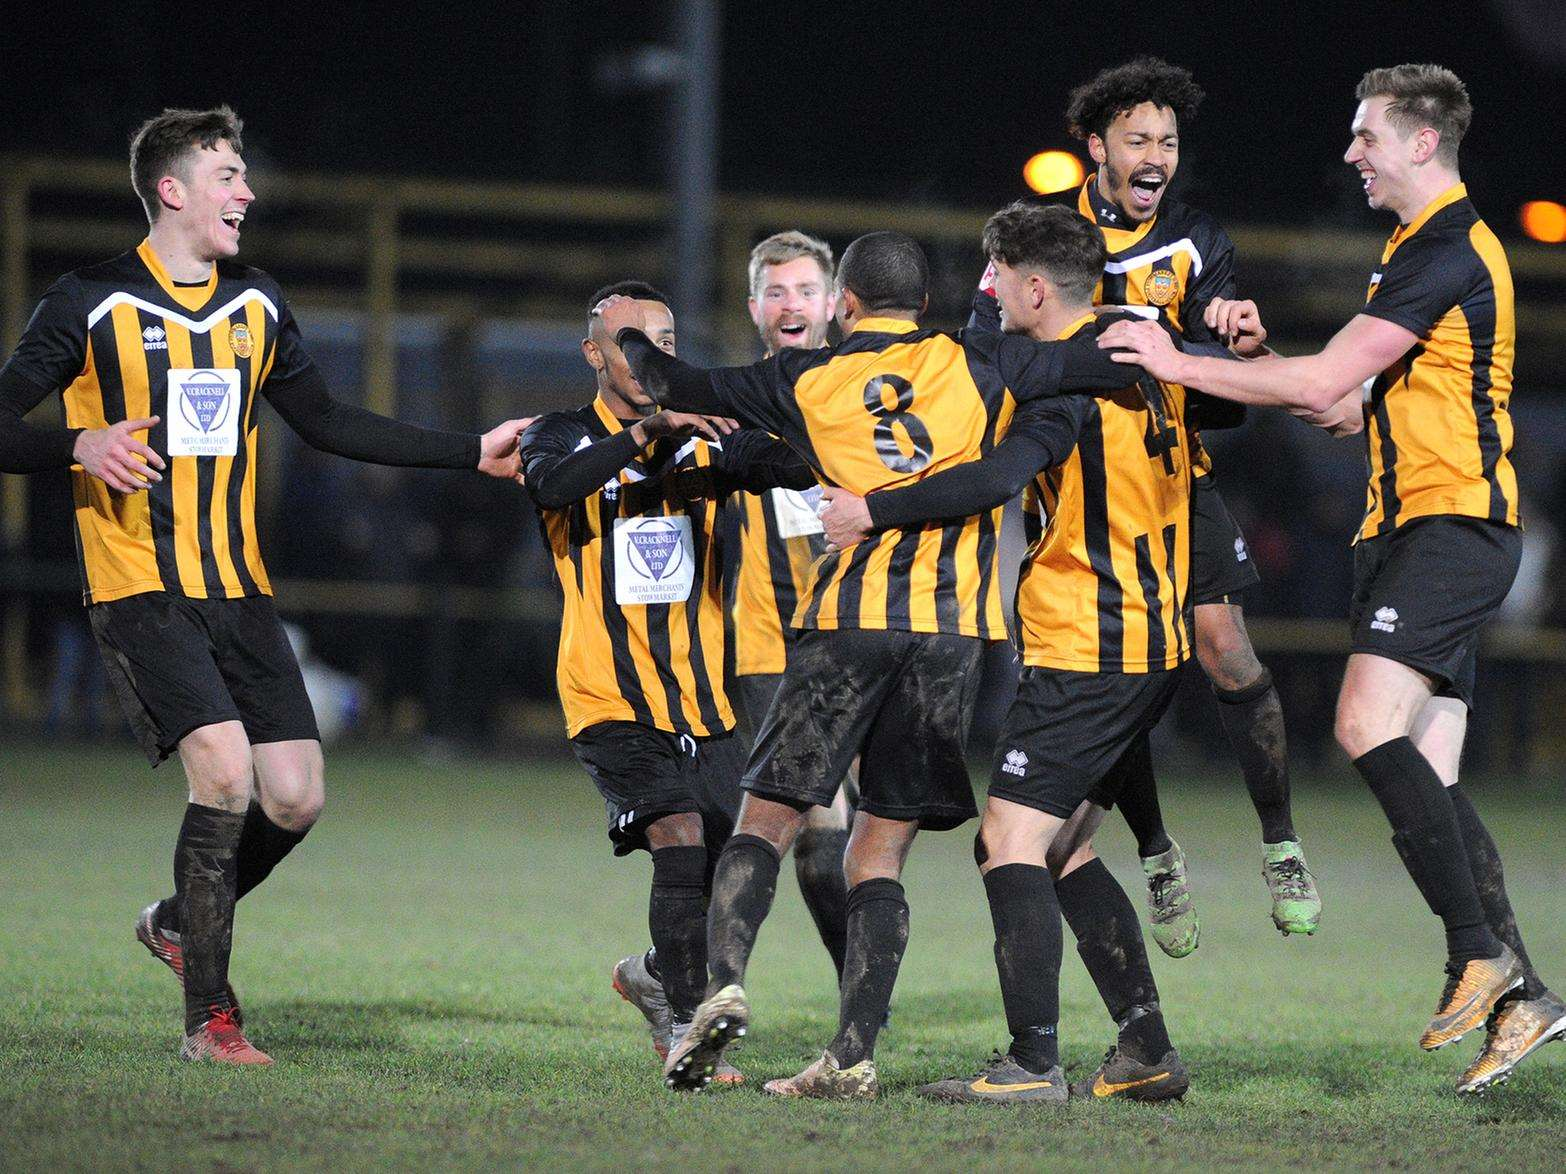 MEMORABLE VICTORY: Stowmarket Town's players celebrate Anton Clarke's goal, which made it 4-2 against league leaders Felixstowe & Walton United Picture: Mecha Morton